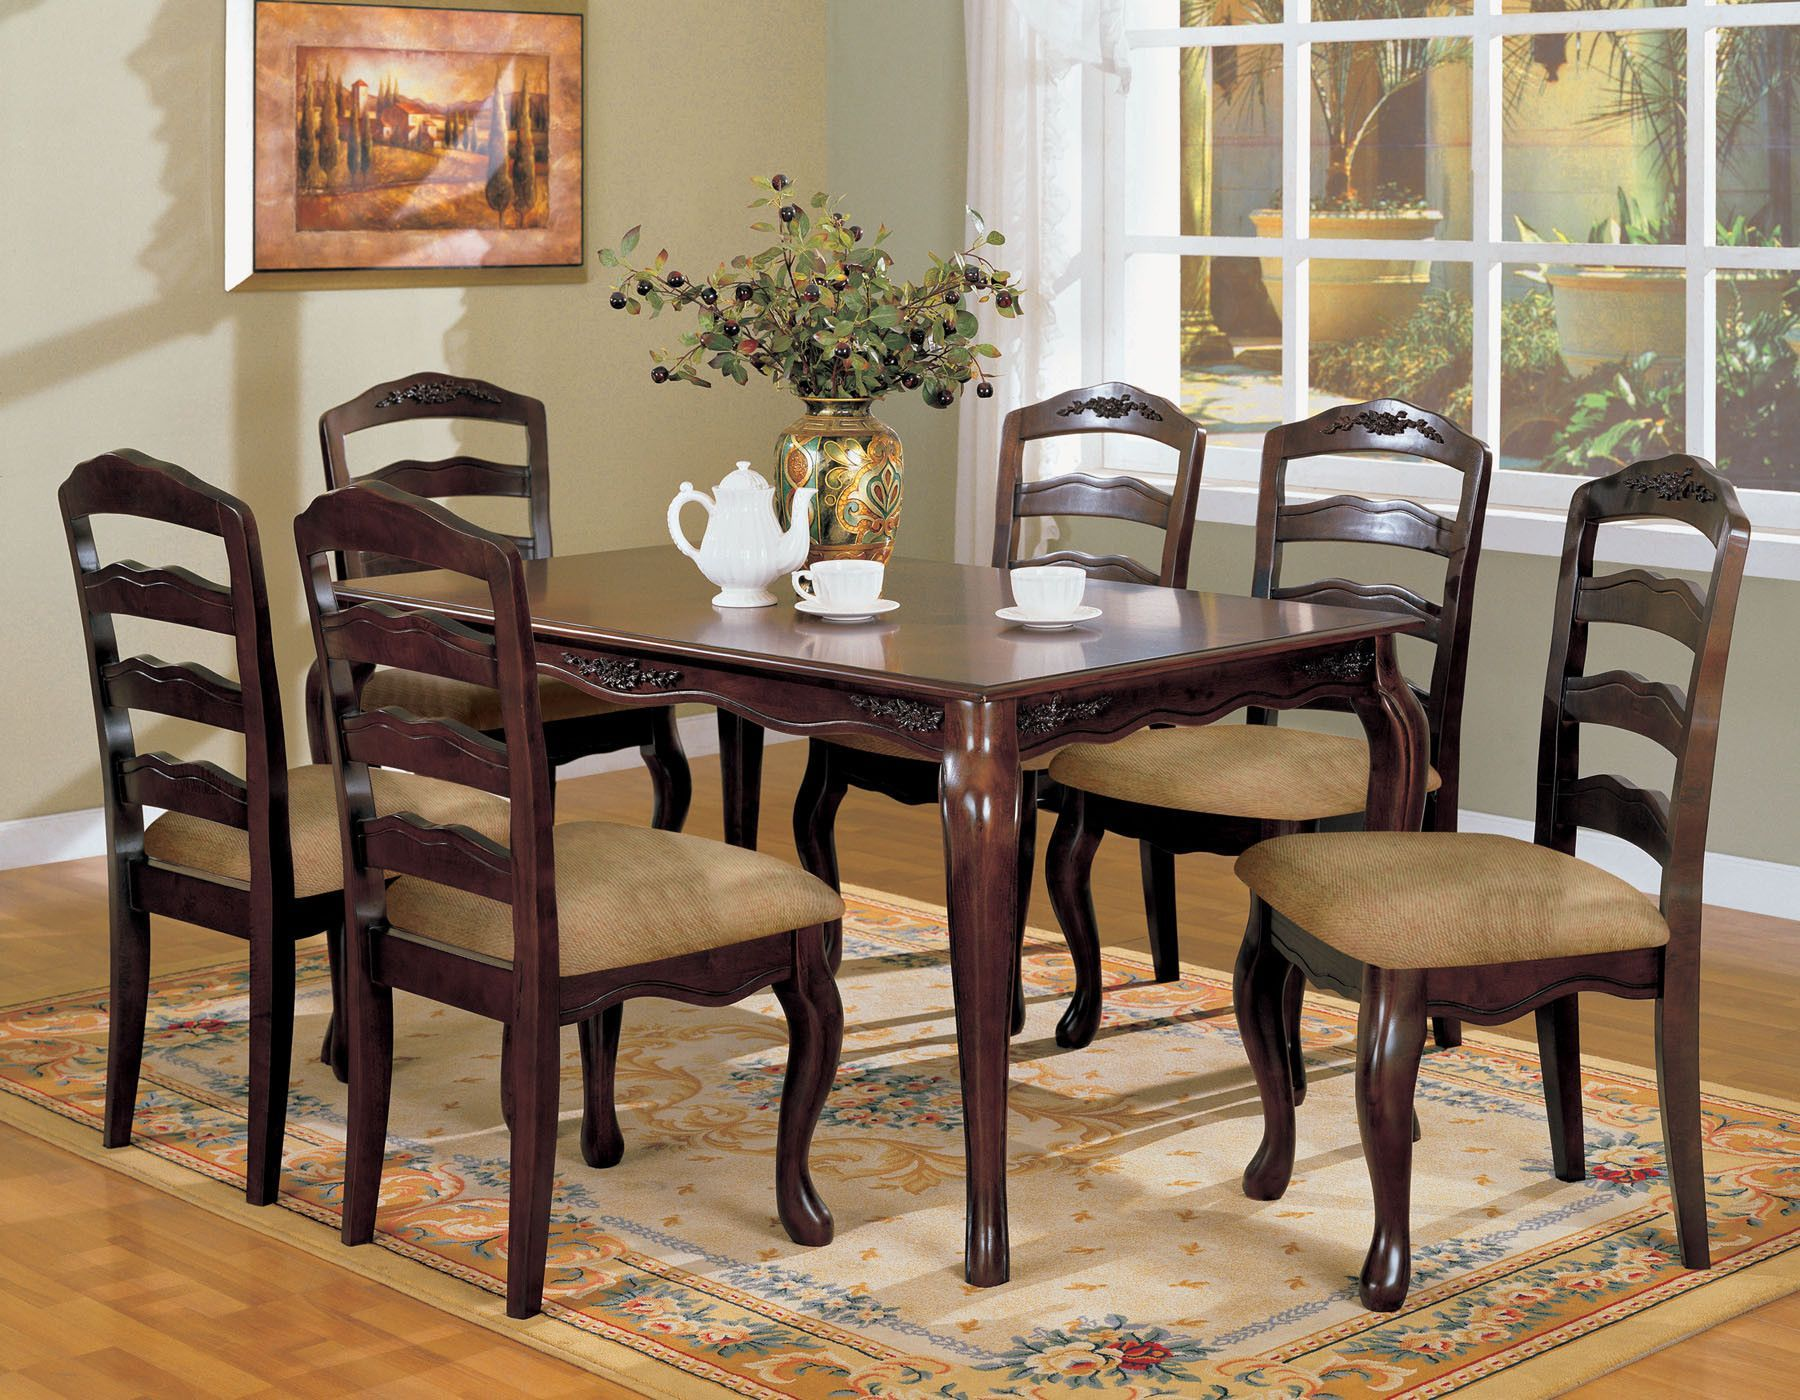 Townsville 7 Pcs Dining Table Chairs Set Cm3109t Dining Room Sets Dining Furniture Rustic Dining Furniture